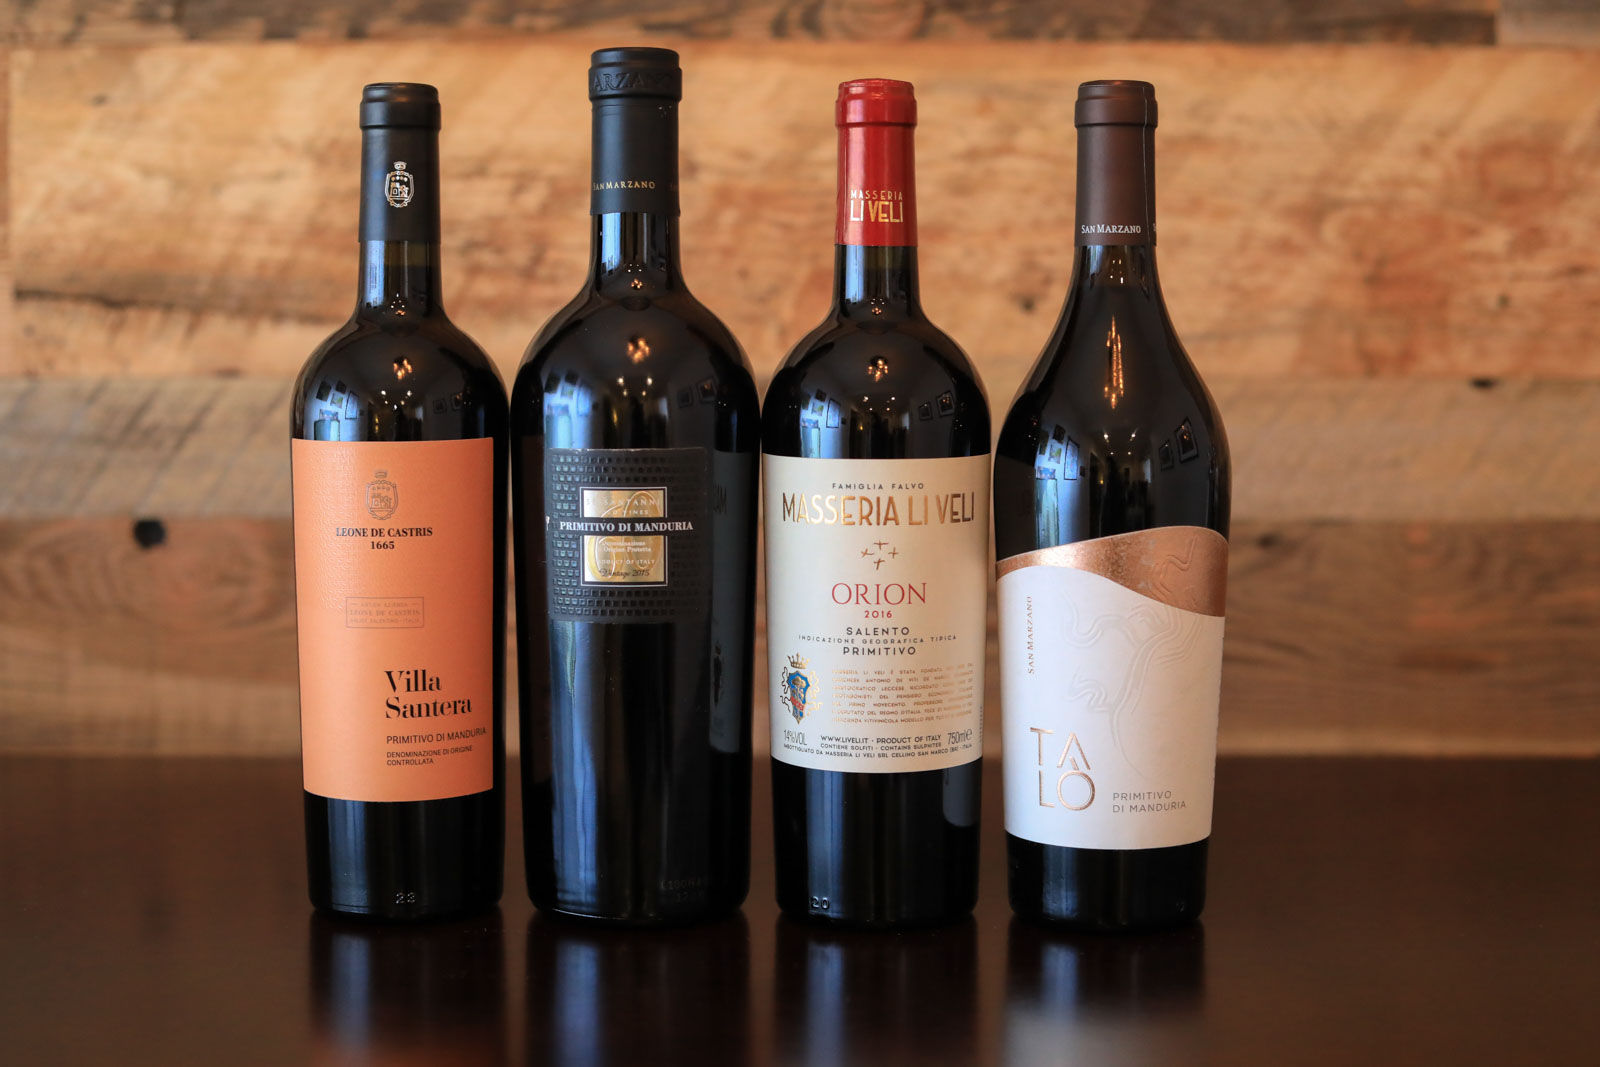 A selection of Primitivo wines from Manduria and the greater Salento area. ©Kevin Day/Opening a Bottle